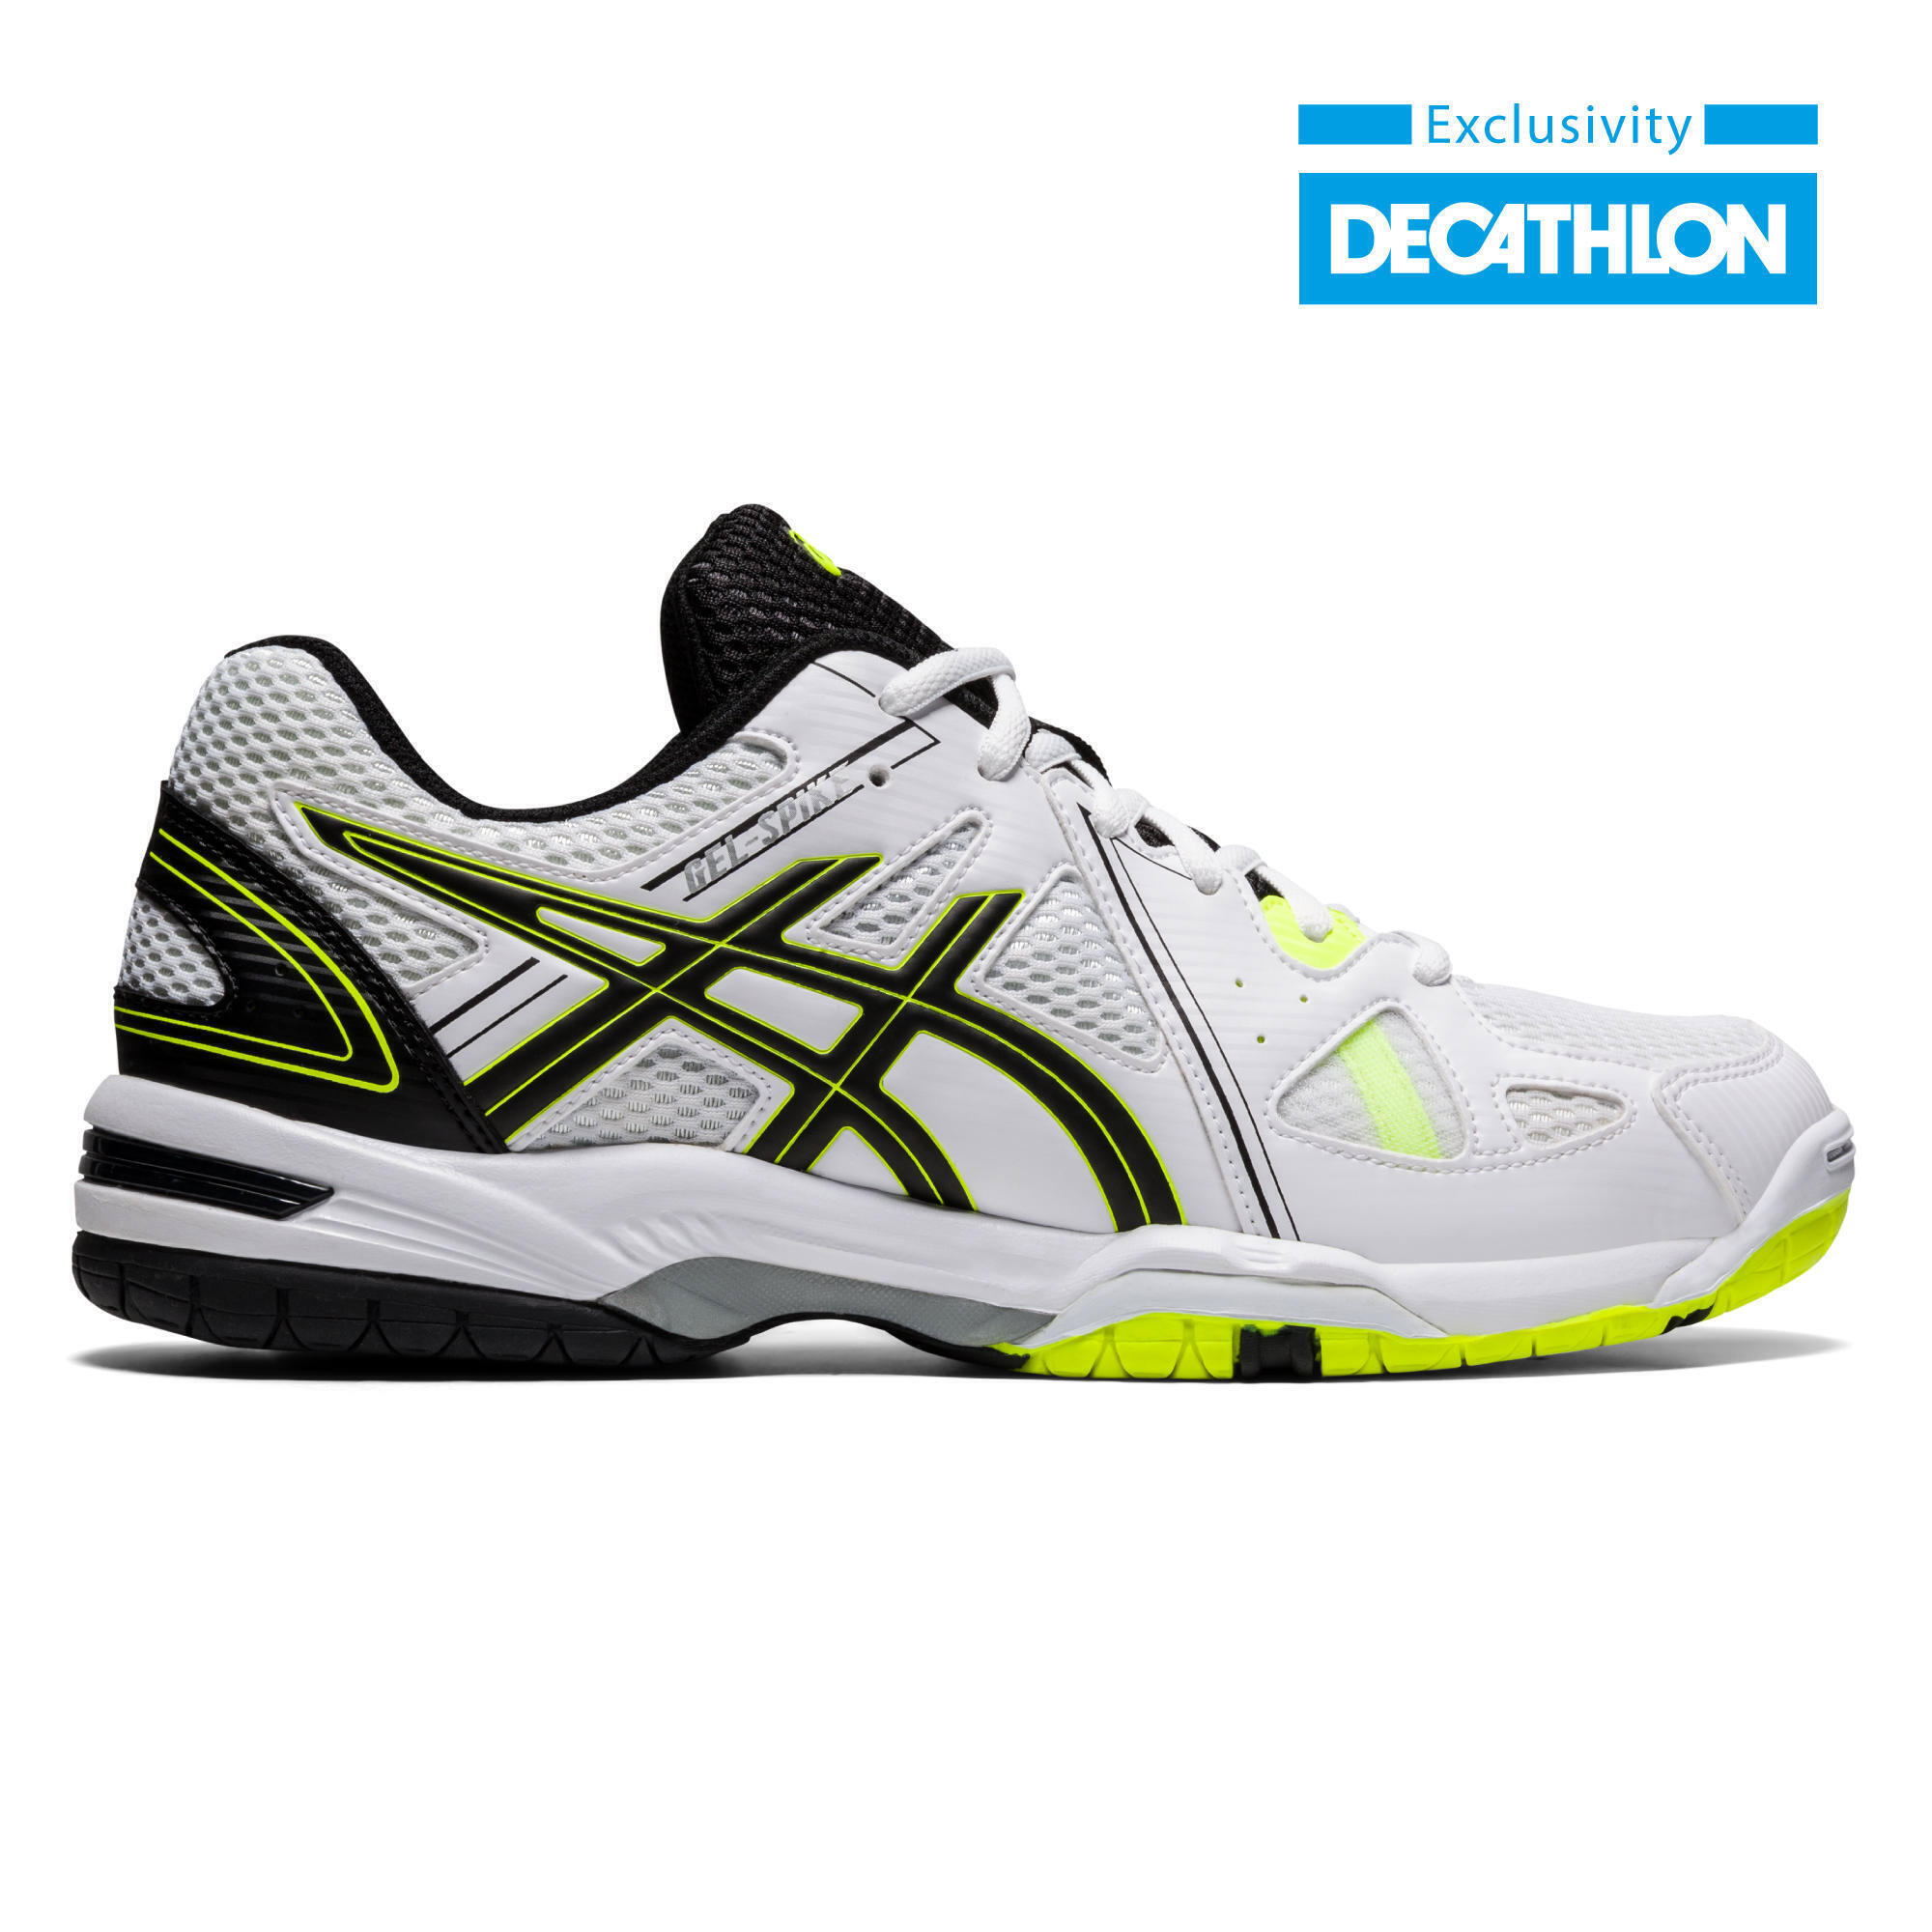 Chaussures de volley-ball Asics homme Gel Spike blanches, noires ...